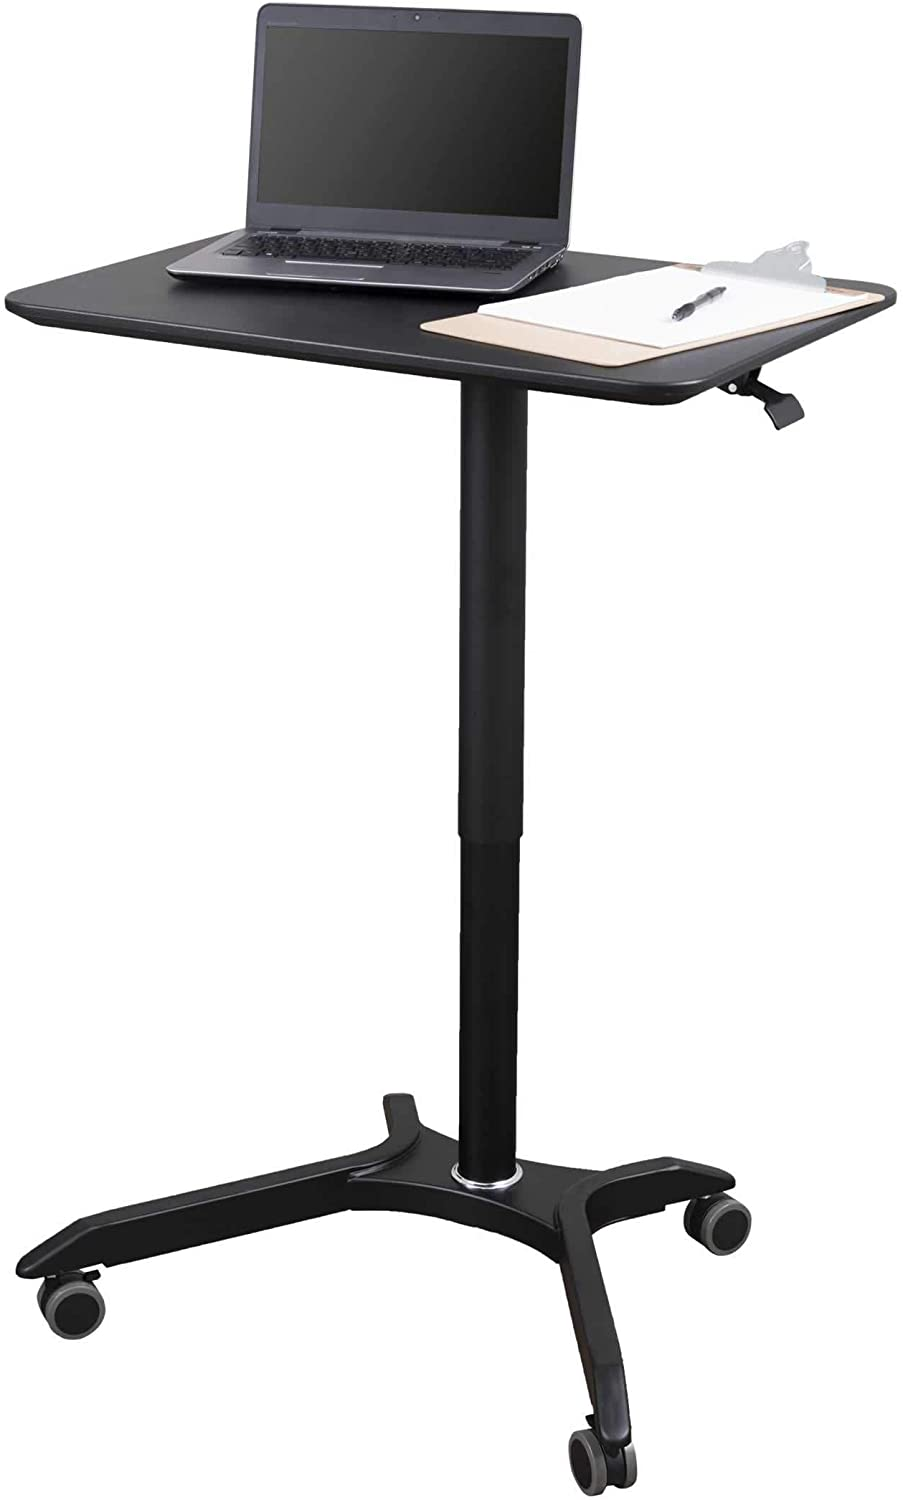 CHEUKHAM Advanced Pneumatic Adjustable Height Mobile Laptop Desk Come with Wireless Charging and Home Black Excellent Lectern for Classrooms Sit and Stand Mobile Offices